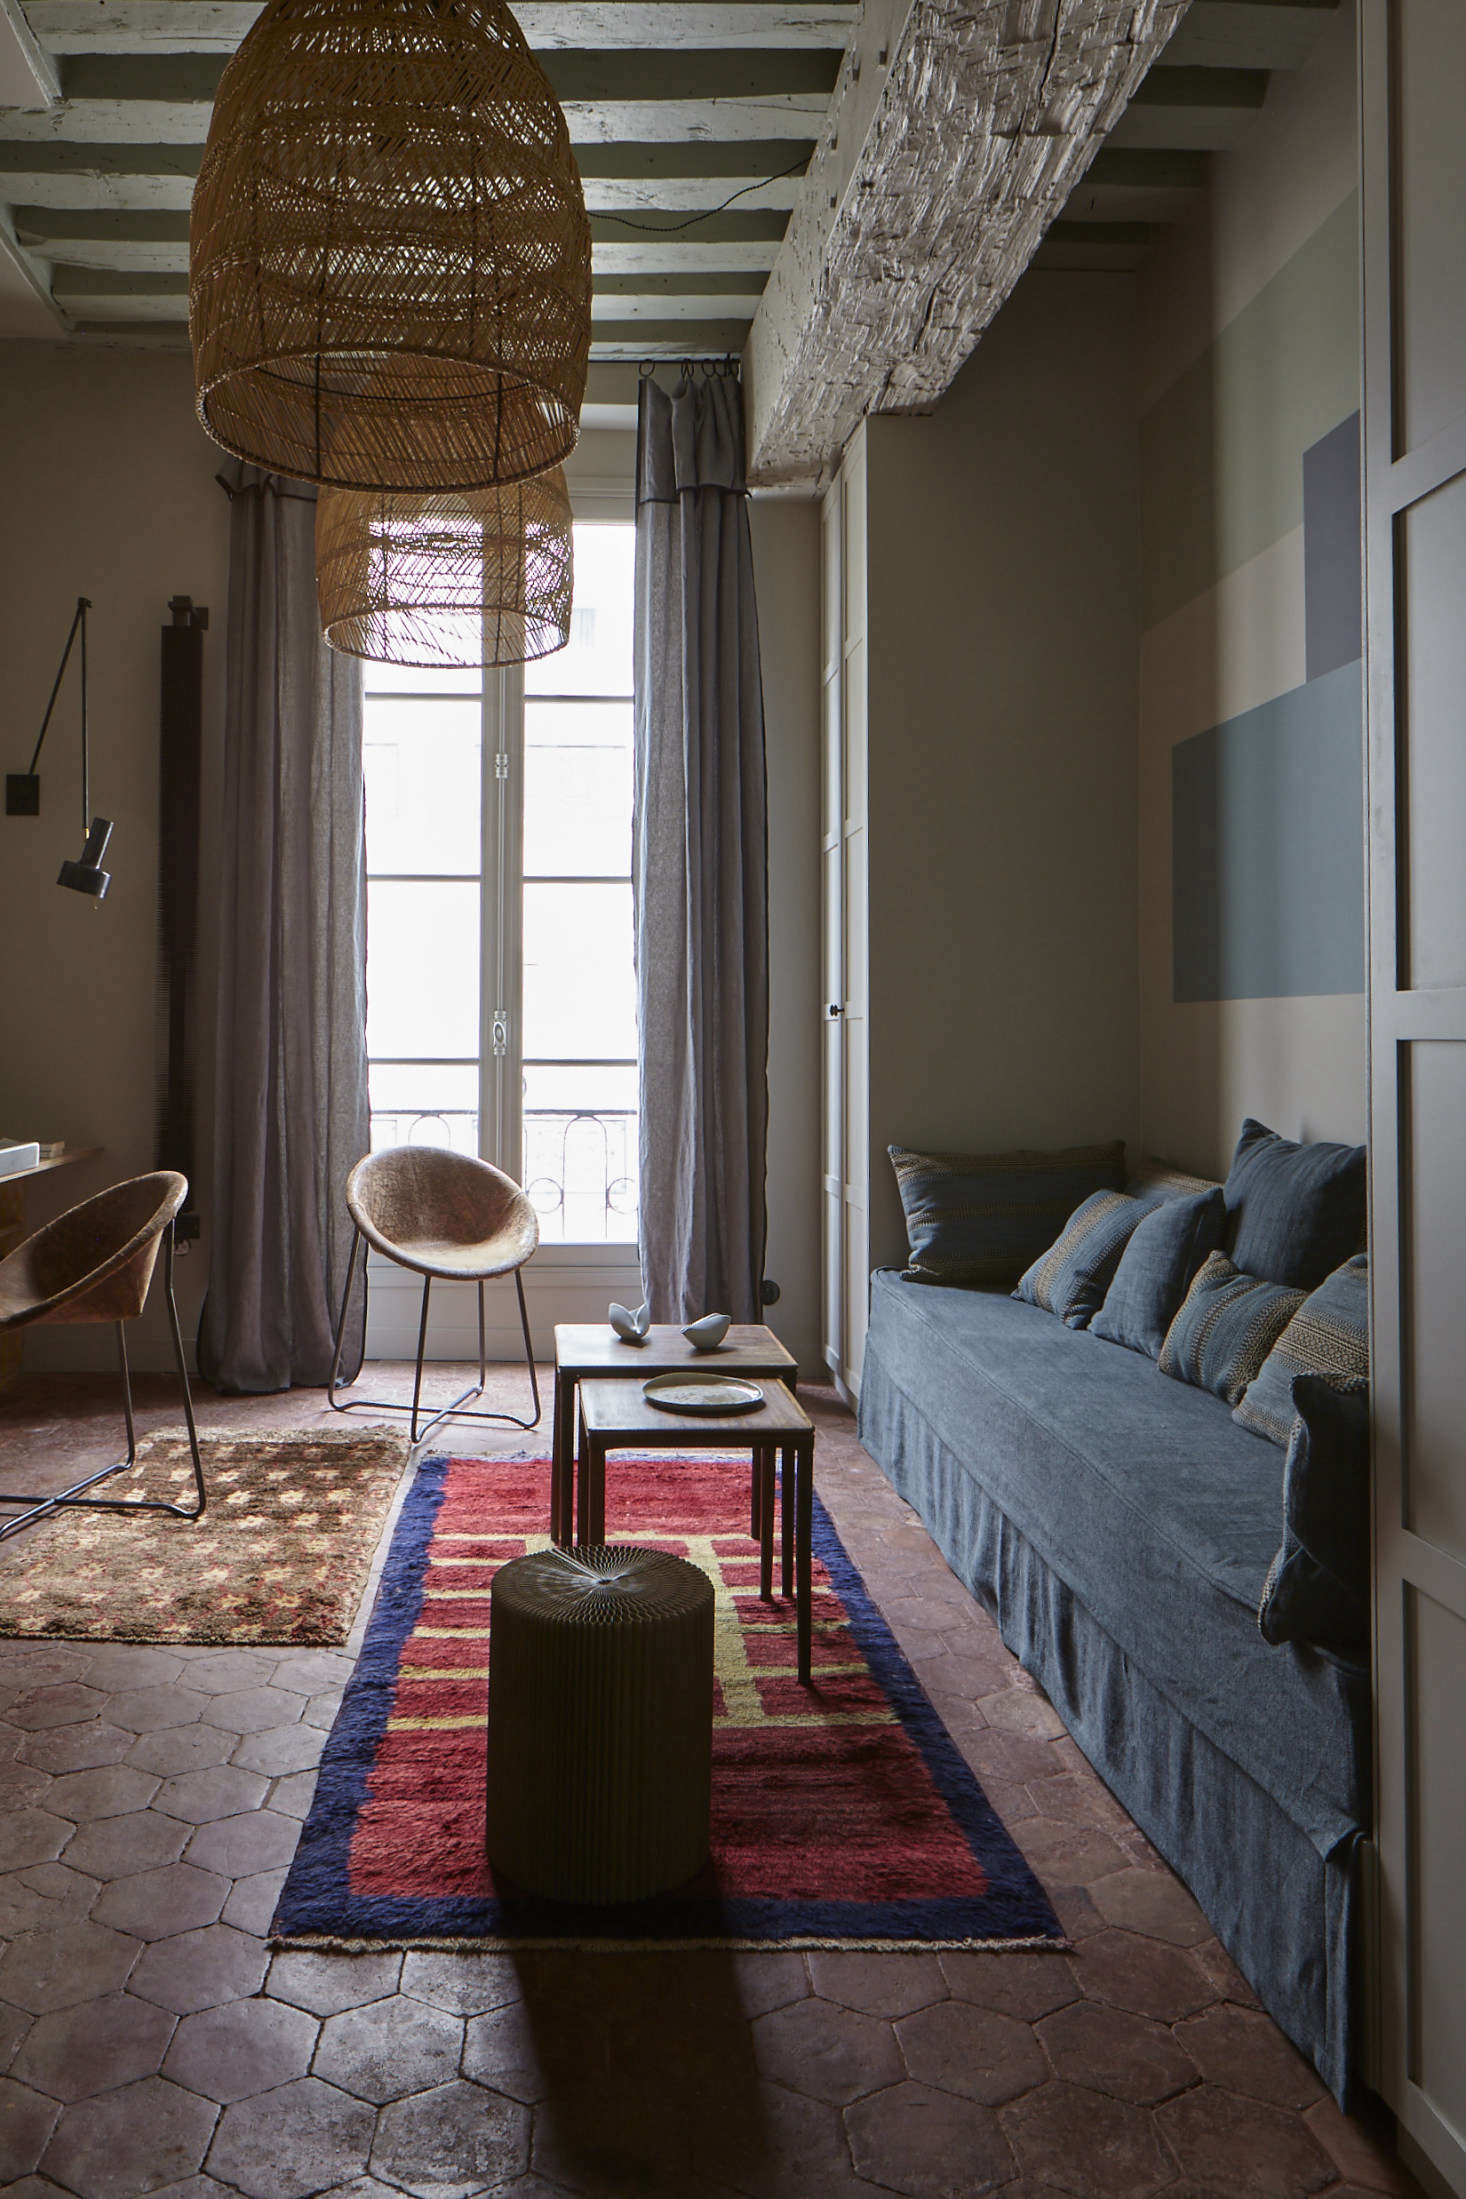 True to style, Evennou worked her color magic, balancing blues with reds and rusts, including the original terra cotta tiles. The rattan pendant lights are from Cinq Étoiles.